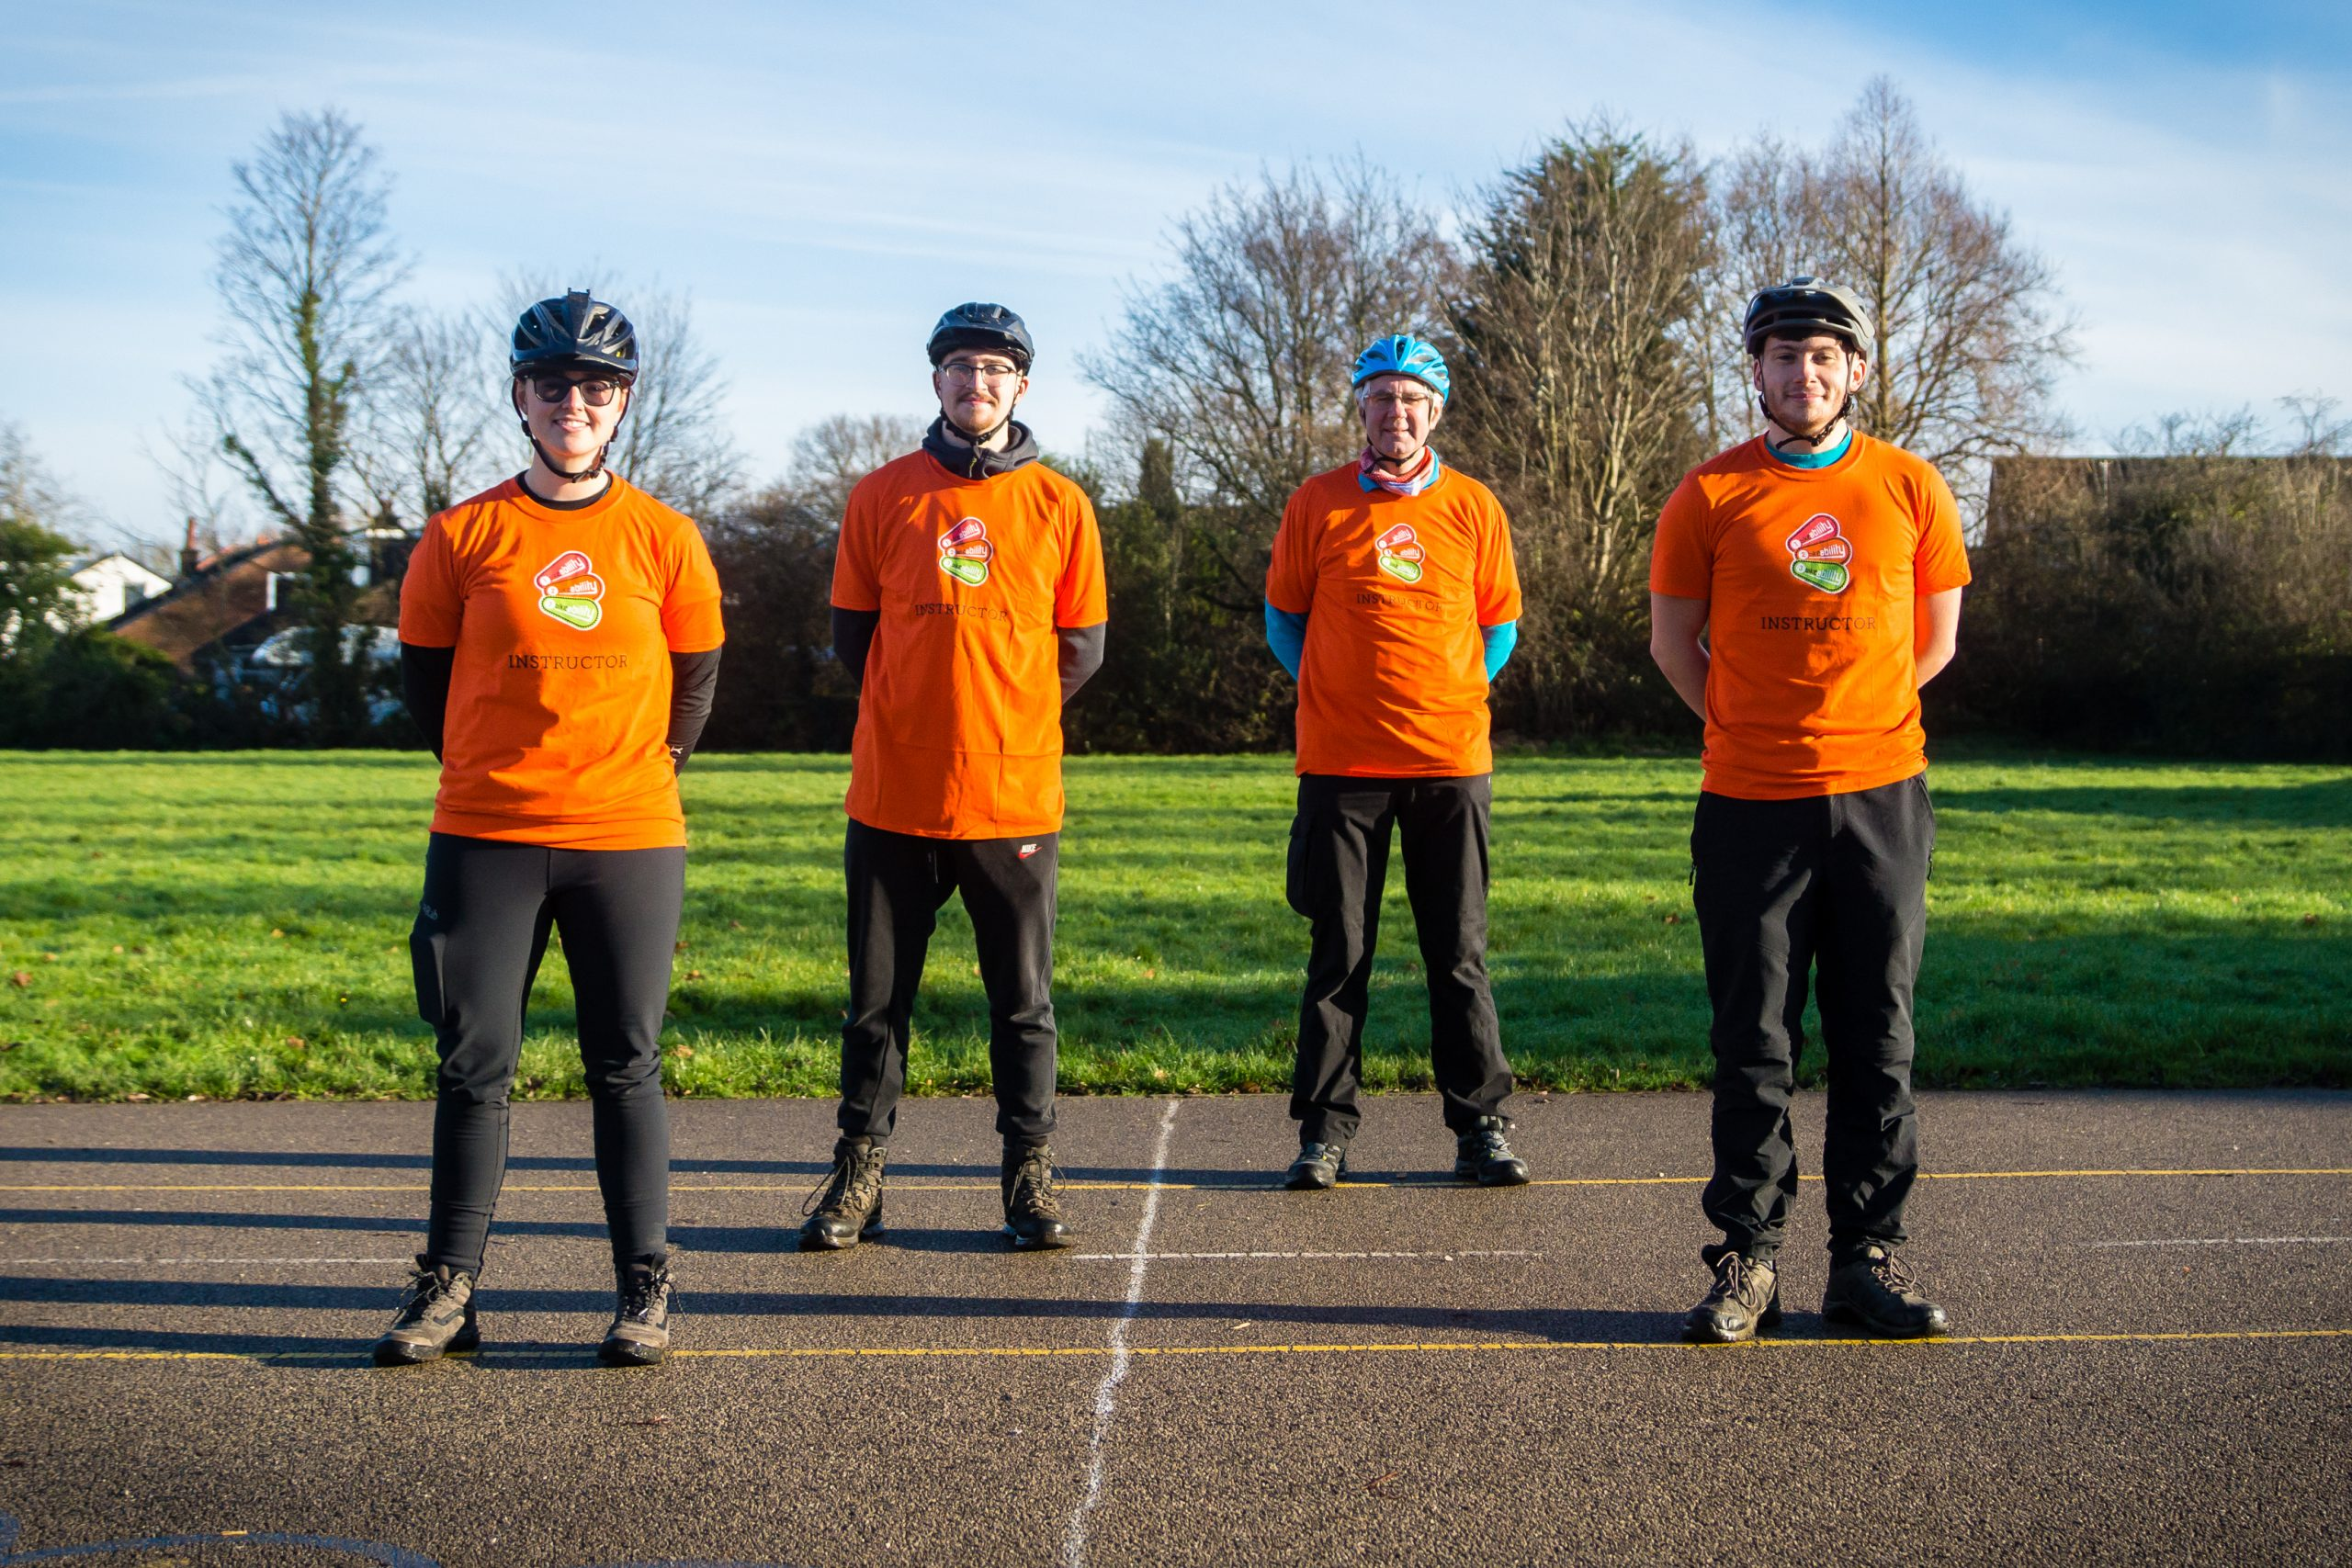 One female and three male Bikeability instructors stood in a line wearing orange t shirts